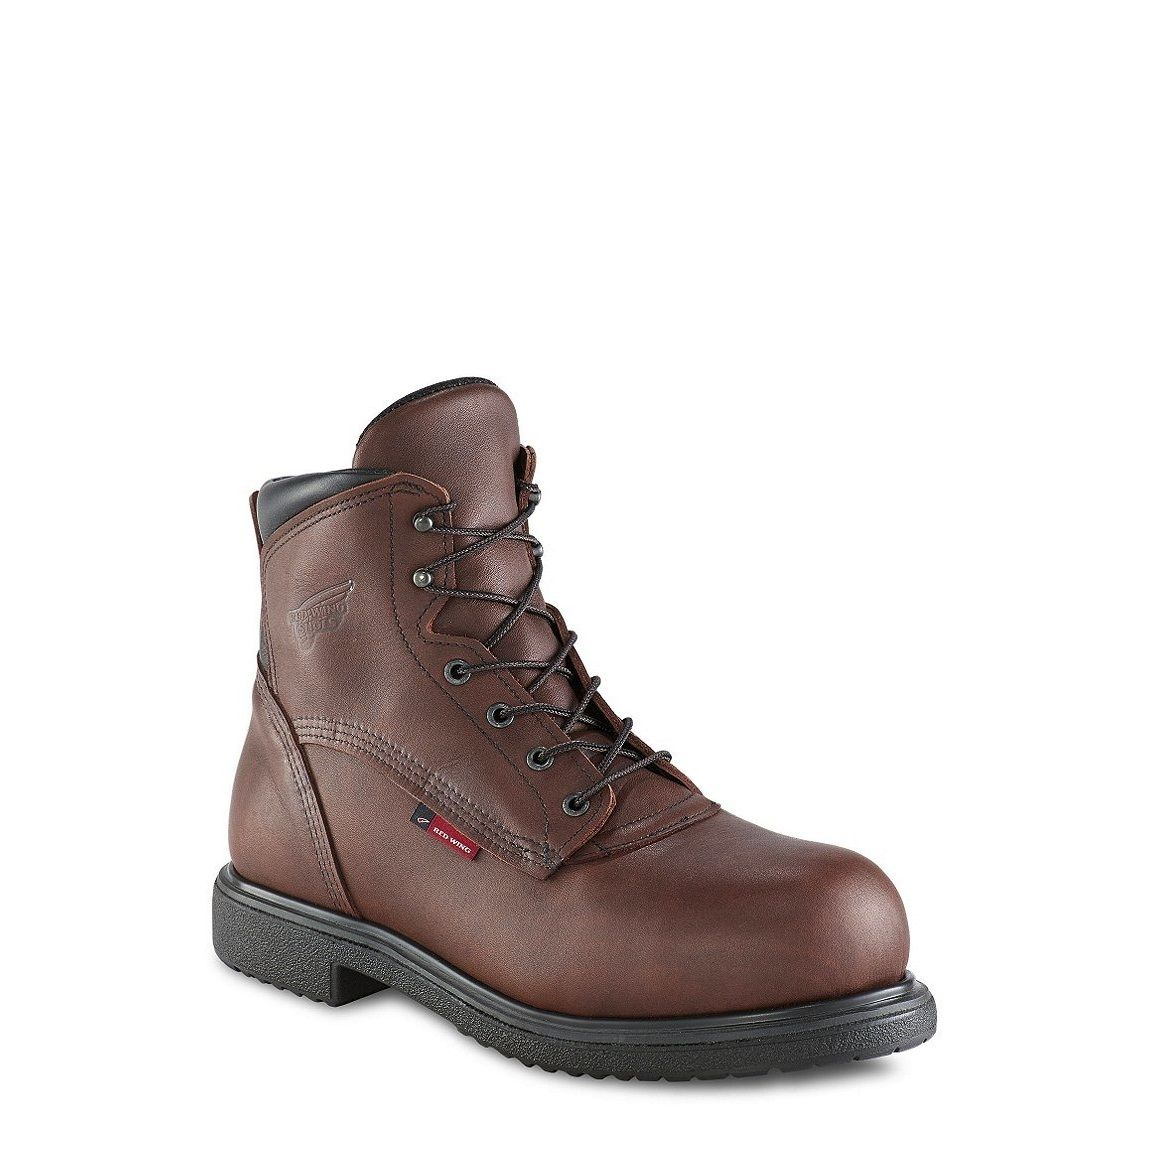 3216 - 6 Inch Lace Up Boot - Brown https://www.largamworks.co.uk ...